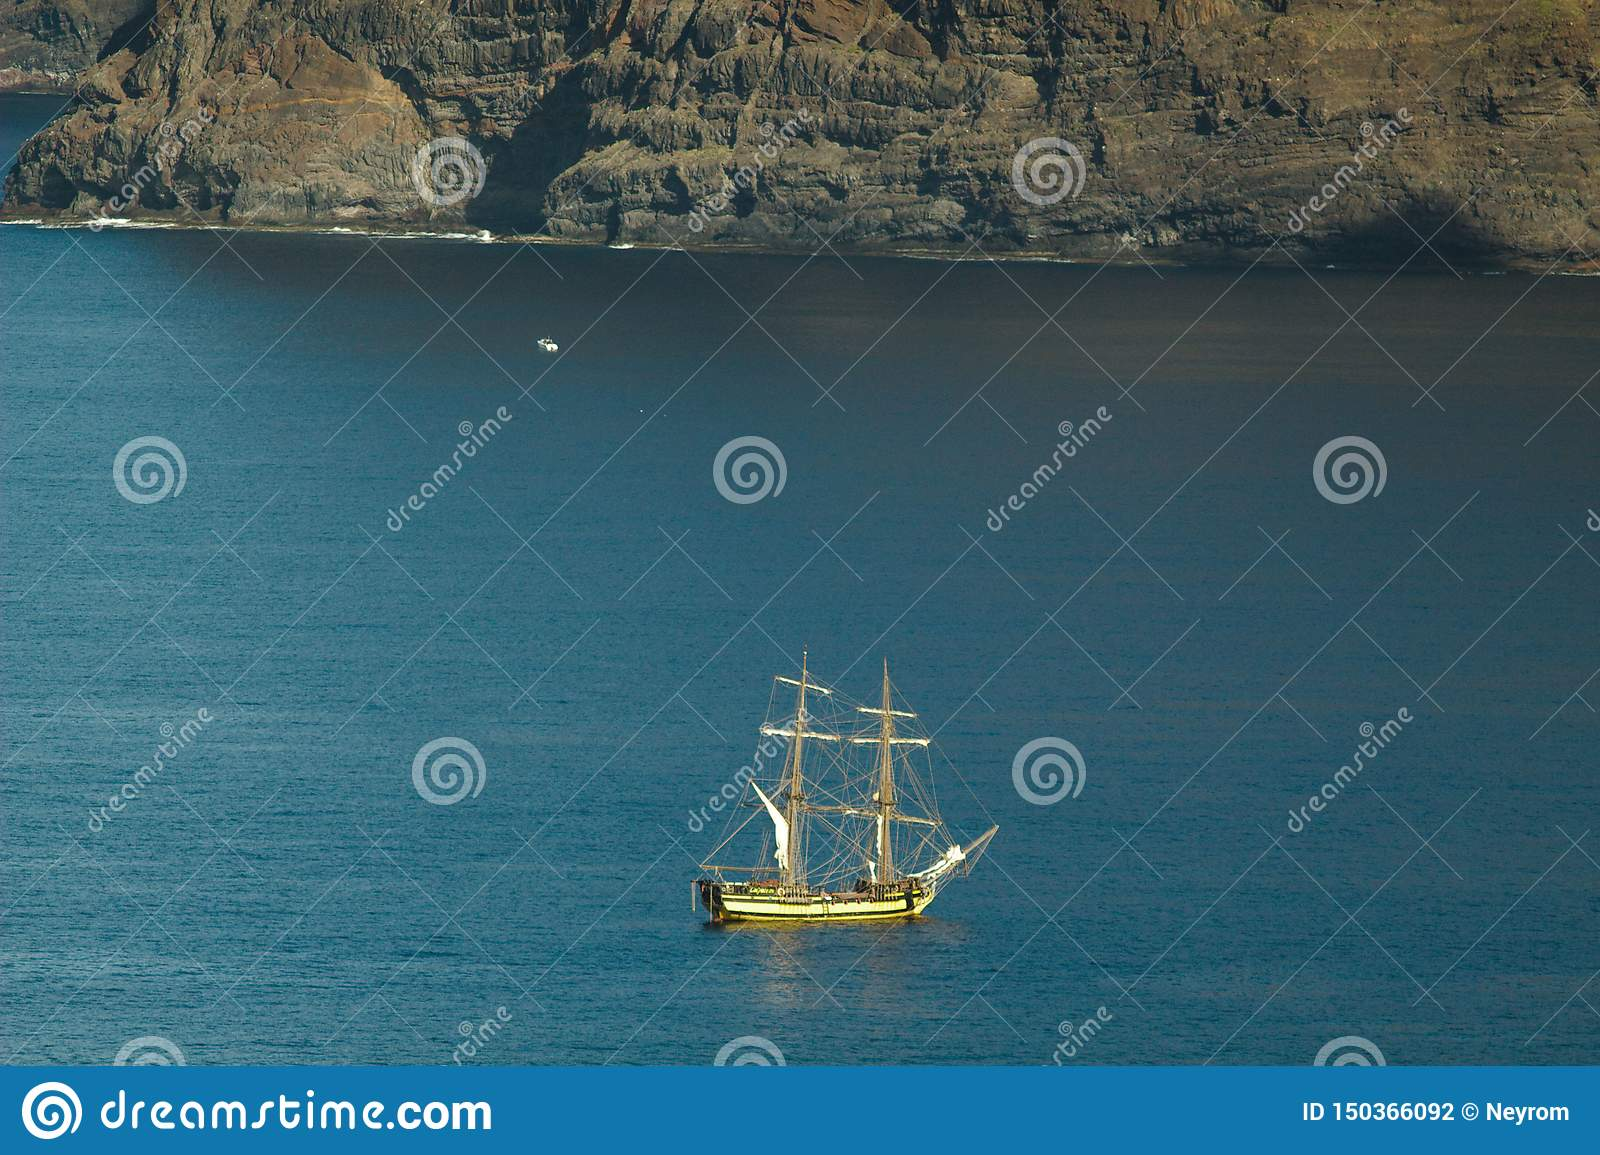 Yacht of tourists near the vertical cliffs Acantilados de Los Gigantes Cliffs of the Giants. View from Atlantic Ocean